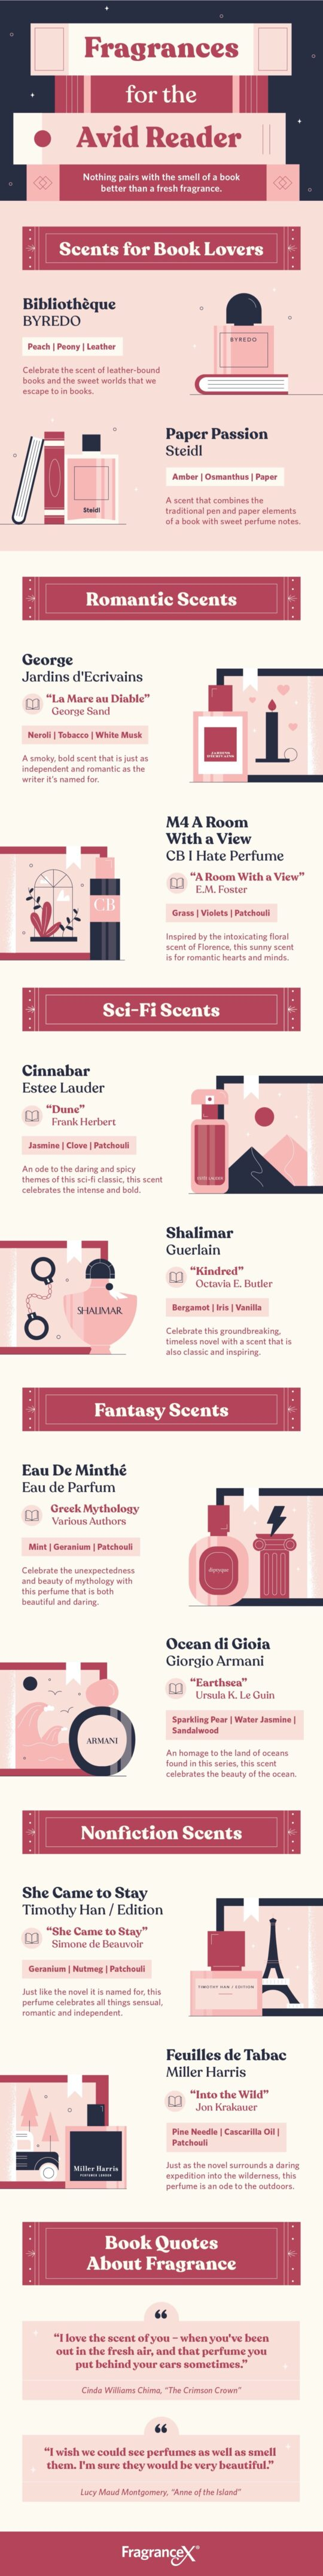 Best literary perfumes for book lovers - full infographic